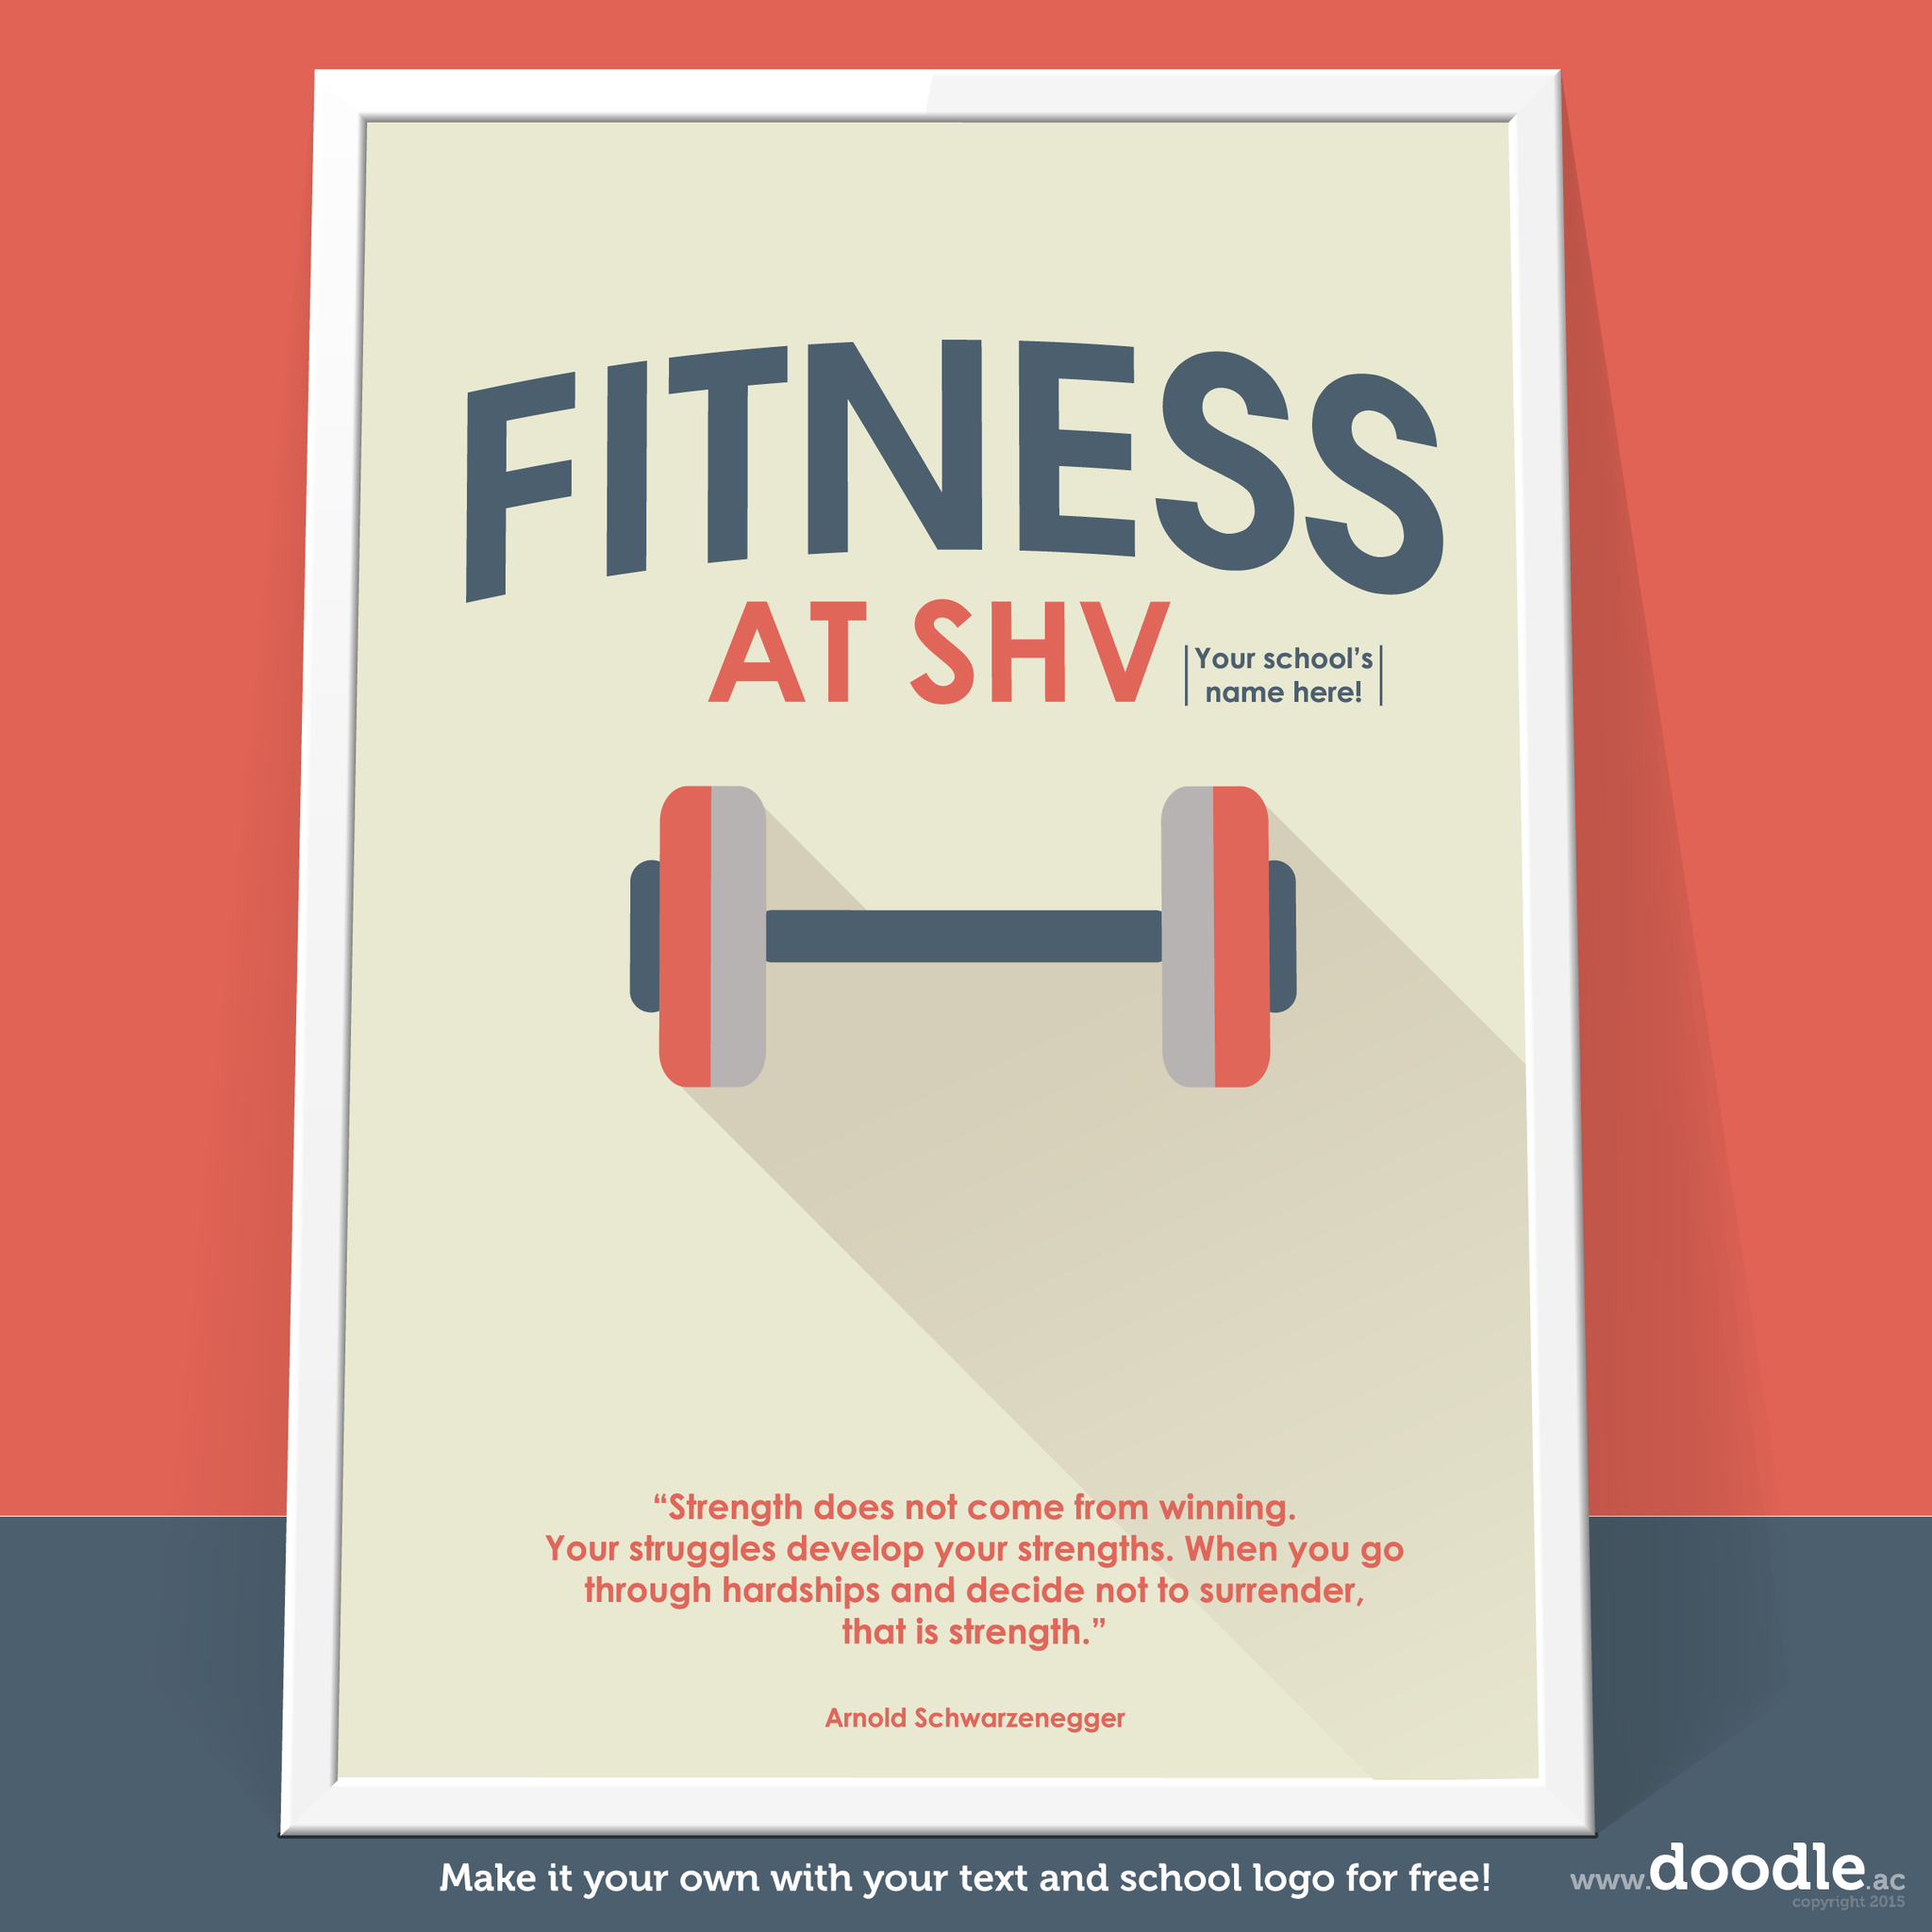 fitness poster - doodle education